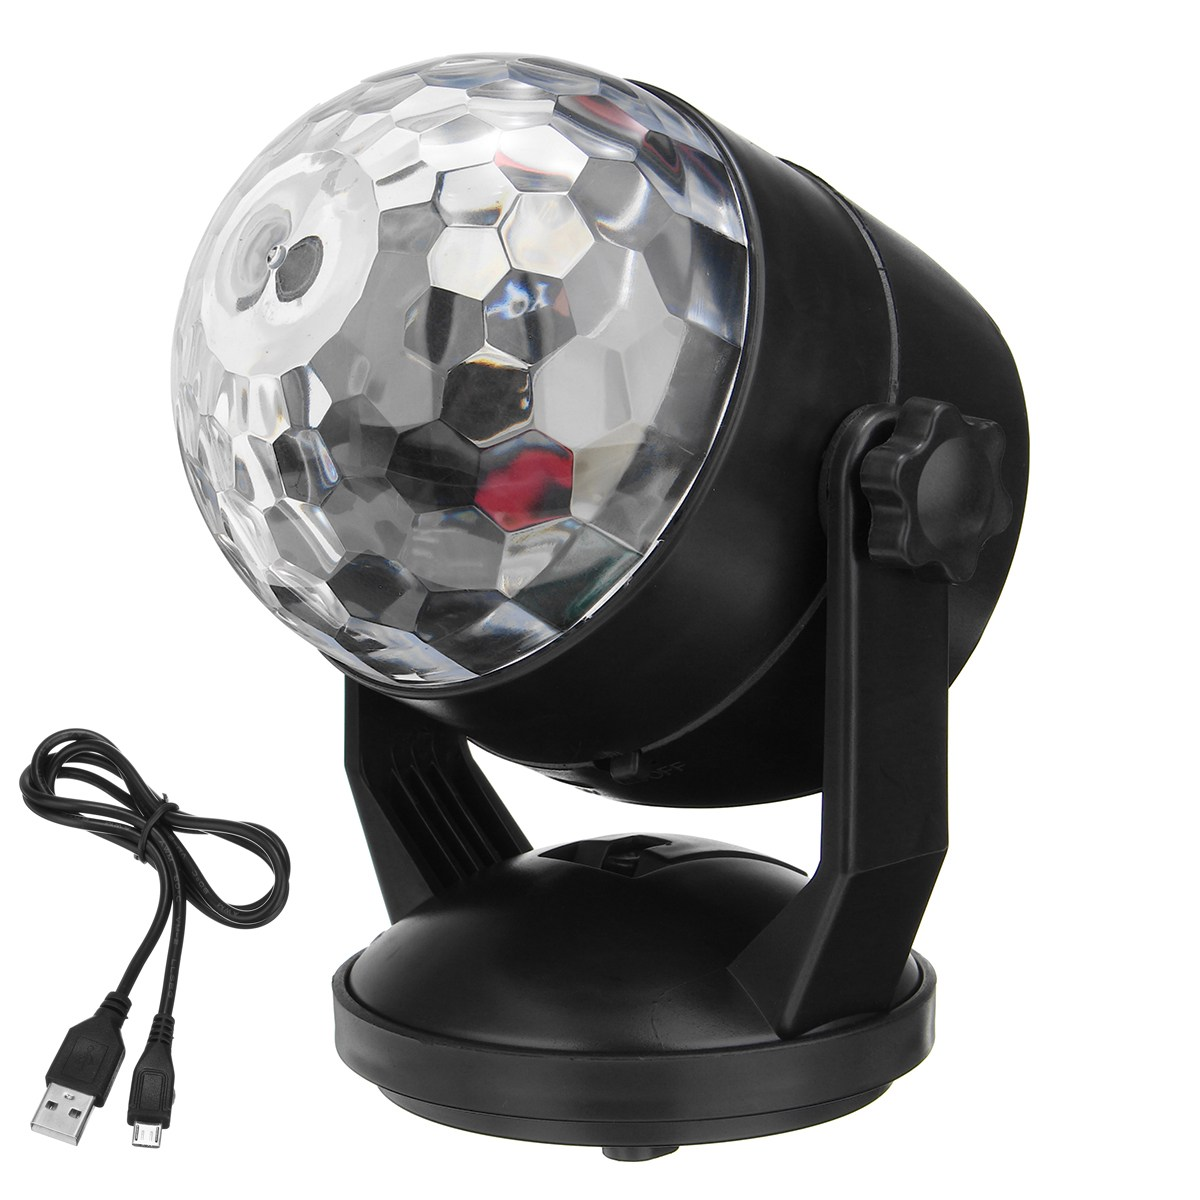 LED Magic Crystal Ball RGB Stage Light Voice Sound Control Night Lamp USB Battery Power Disco Crystal DJ Club Bar Party Decor icoco sound control light 3w e27 light bulb voice activated intelligent led sensor lamp small night light for corridor bedroom